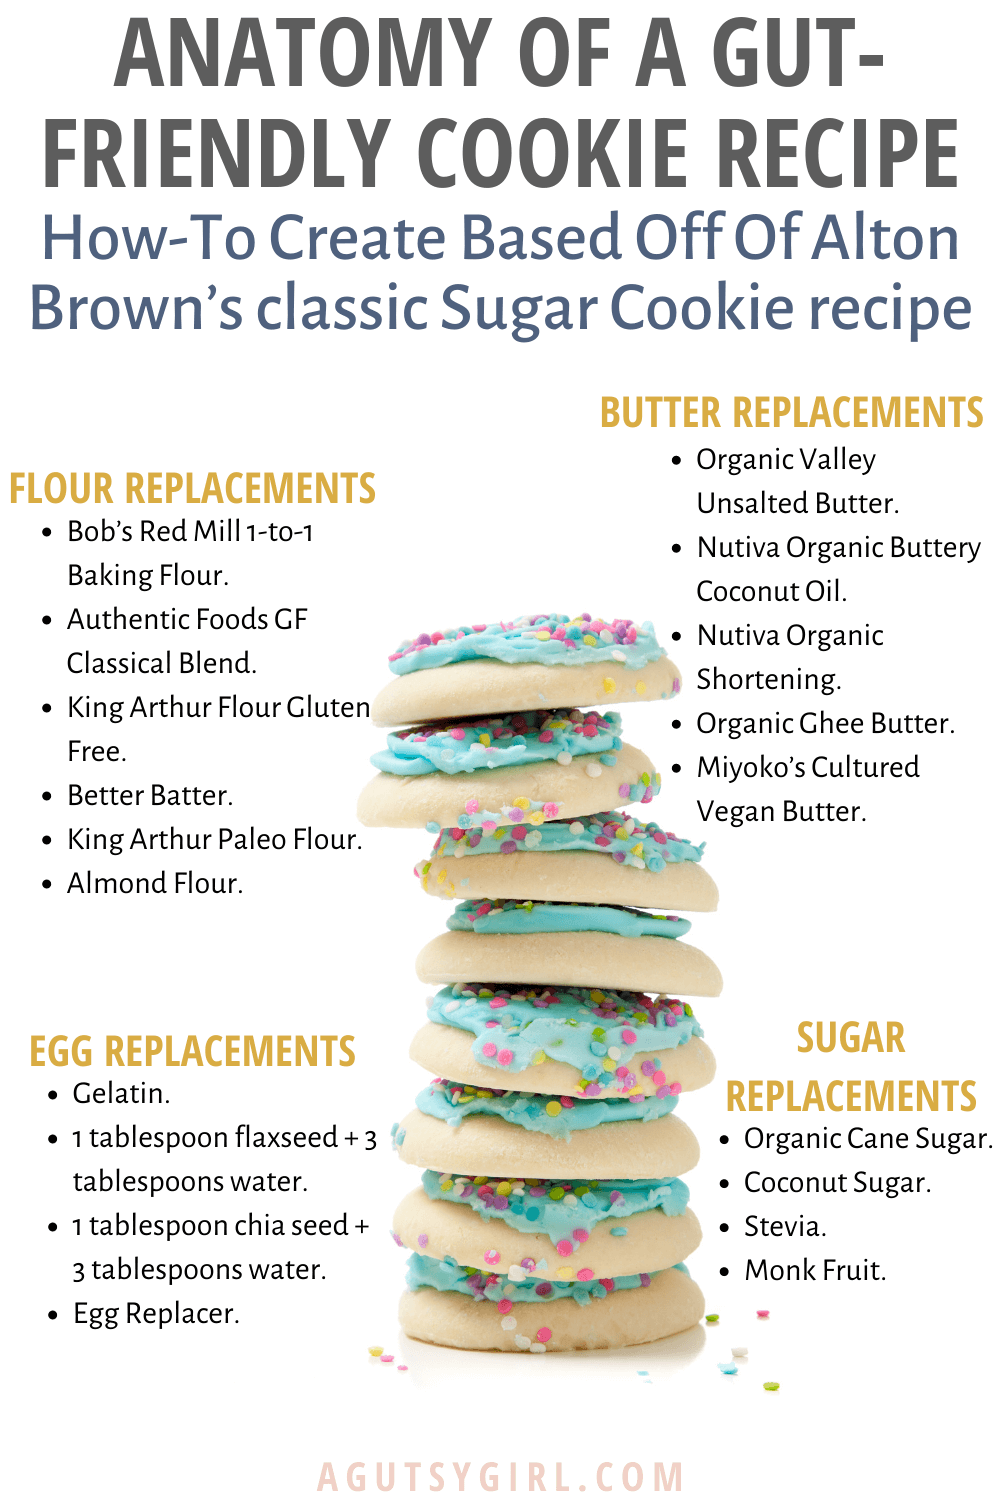 Anatomy of a Gut-Friendly Cookie Recipe agutsygirl.com #cookies #glutenfreecookies #healthybaking #cookierecipe